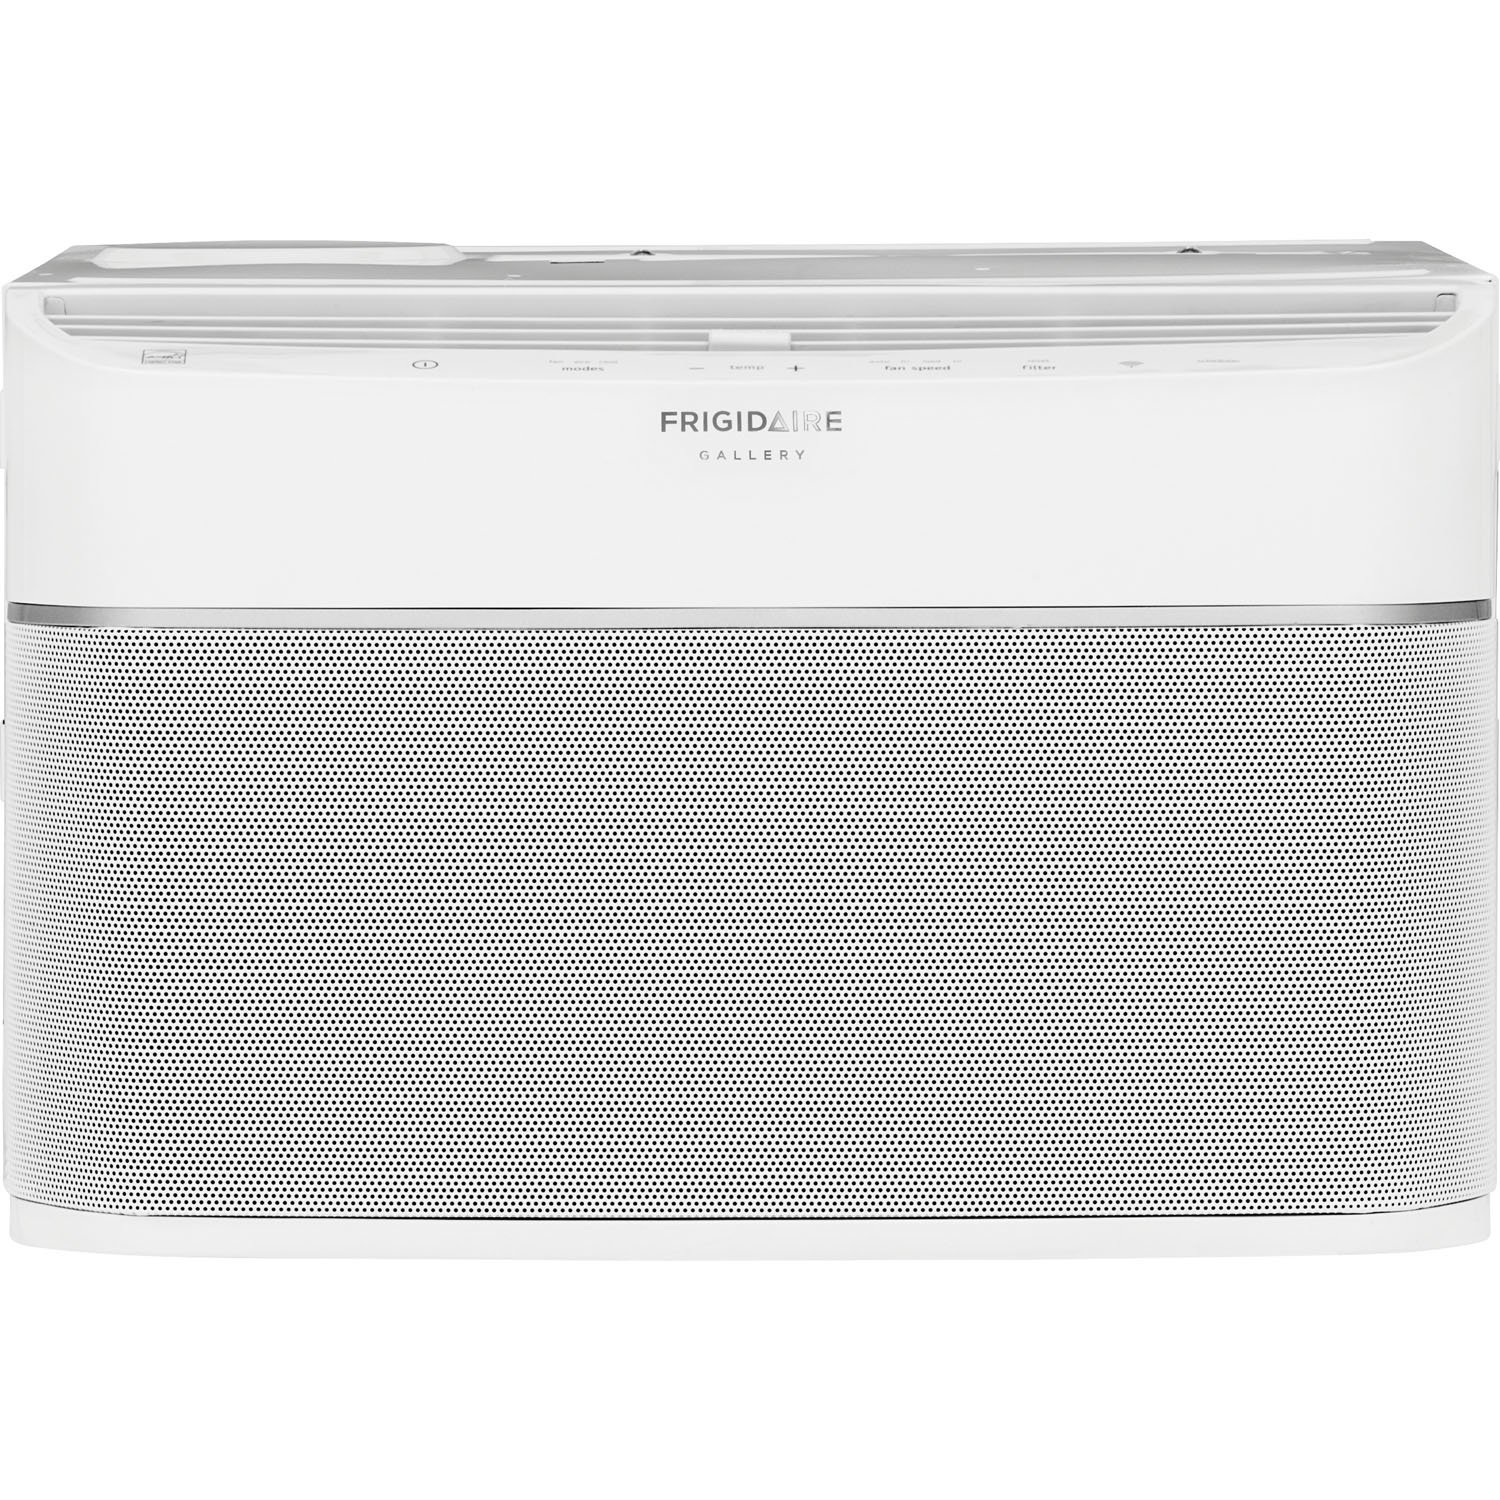 Frigidaire Smart Window Air Conditioner, Wi-FI, 8000 BTU, 115V, Compatible with Alexa FGRC0844S1